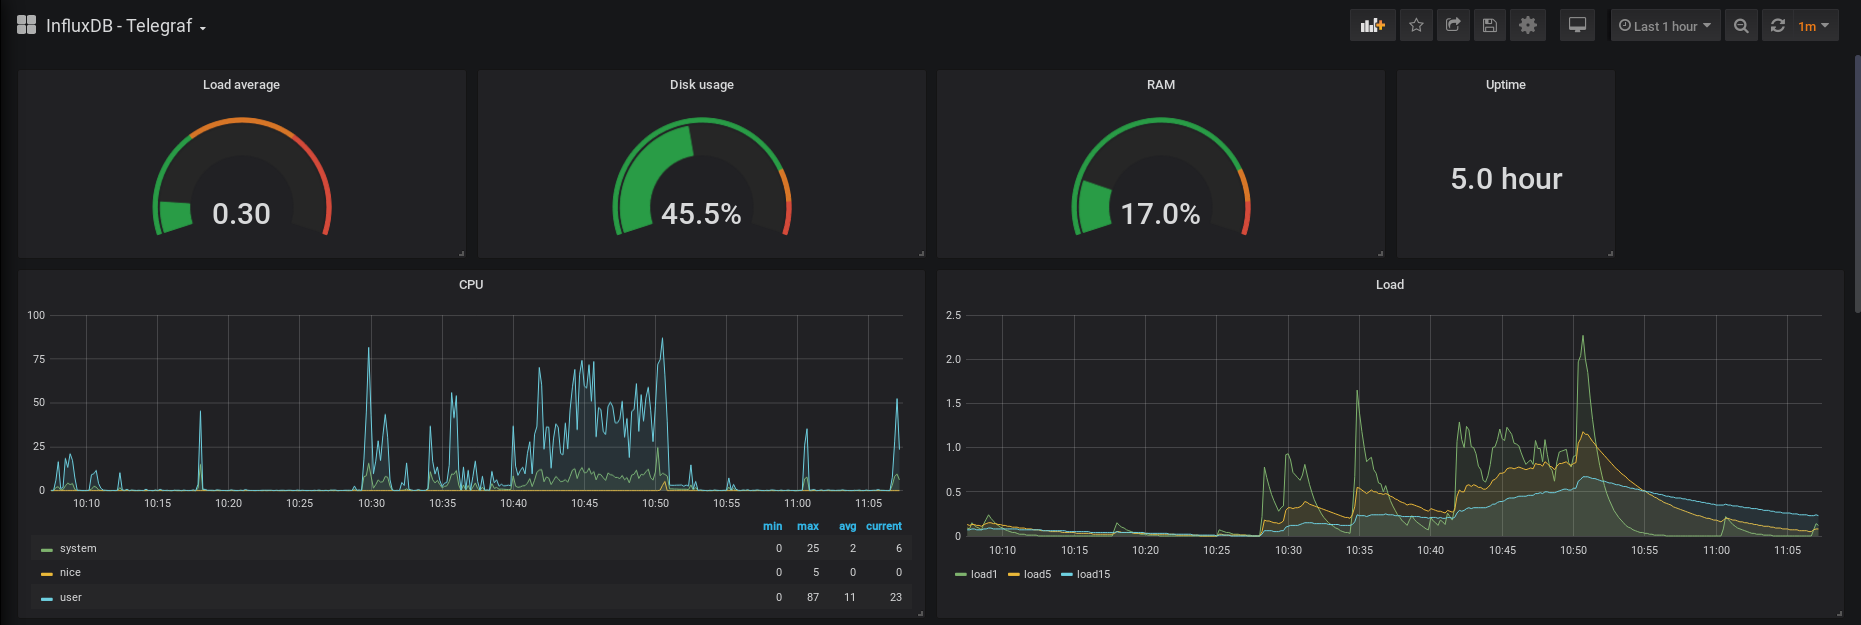 Grafana dashboard displaying Telegraf metrics